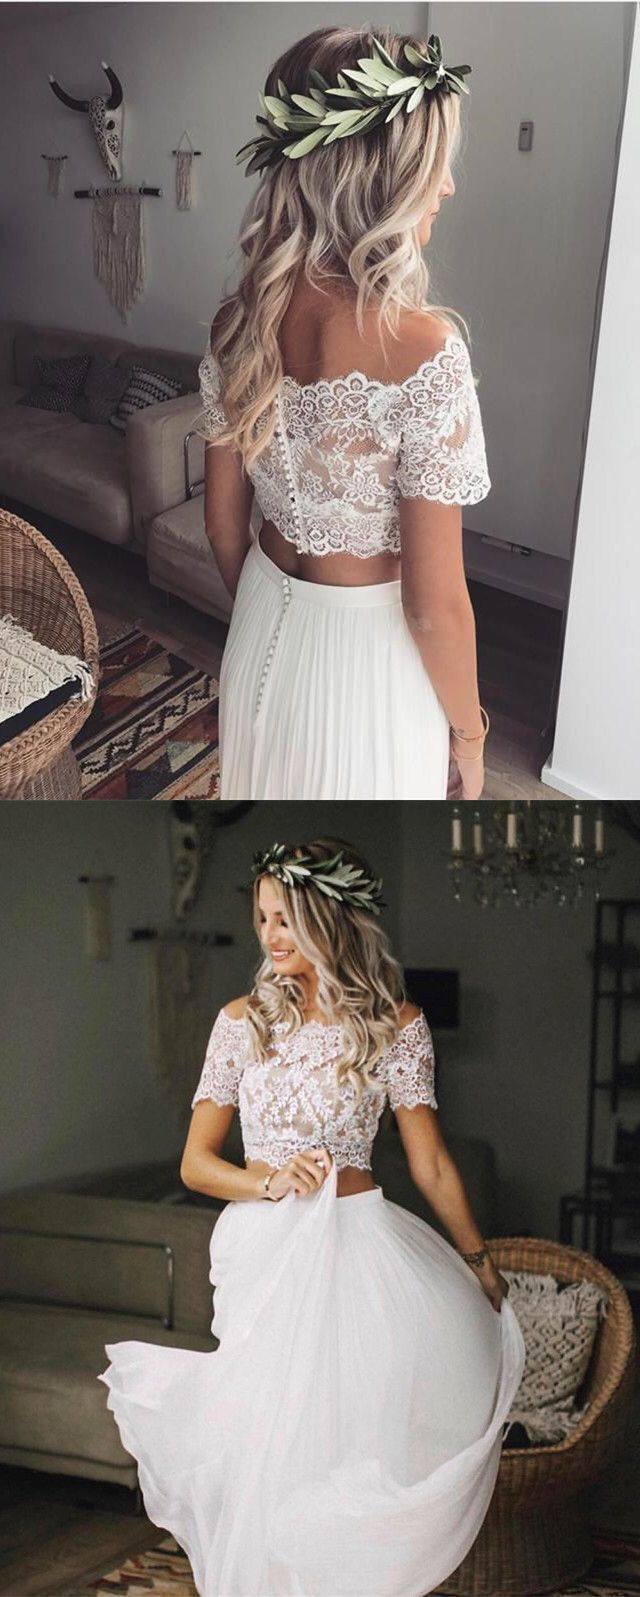 Light Two Piece White Off The Shoulder Grace Girls Dress 2 Piece Wedding Dress Bridal Gowns Two Piece Wedding Dress [ 1597 x 640 Pixel ]